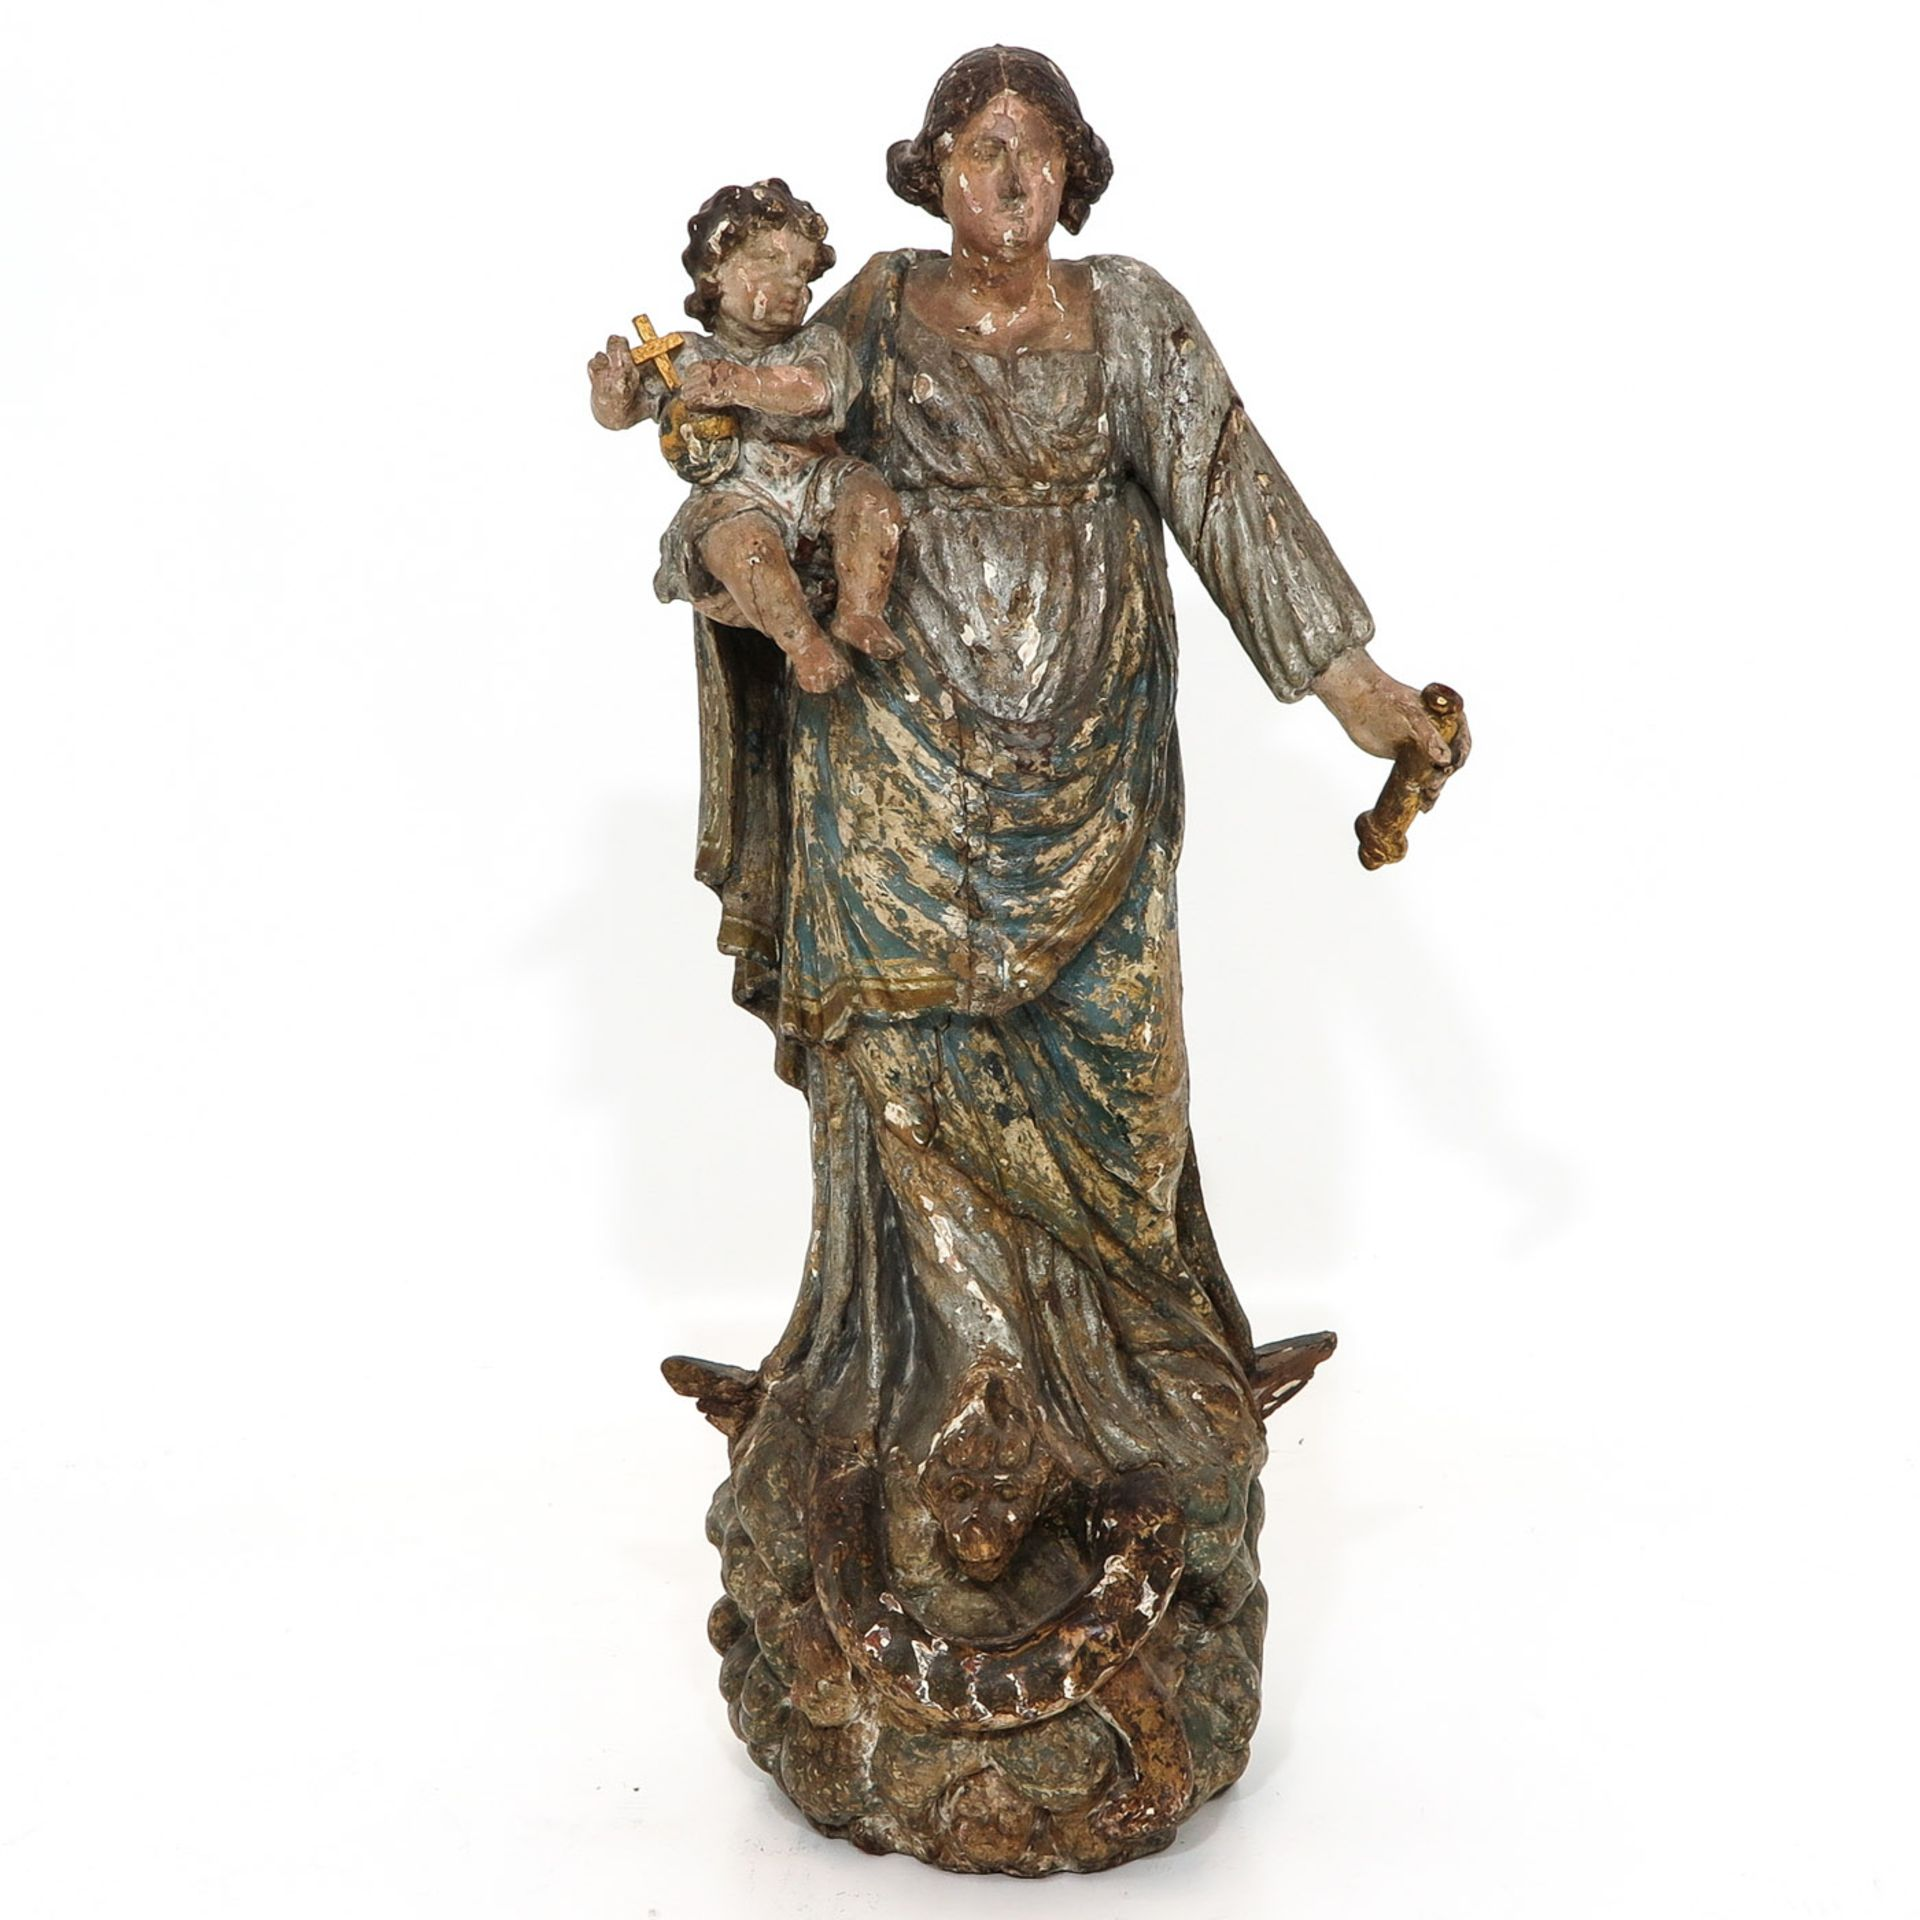 Los 1157 - A 17th - 18th Century Madonna and Child Sculpture